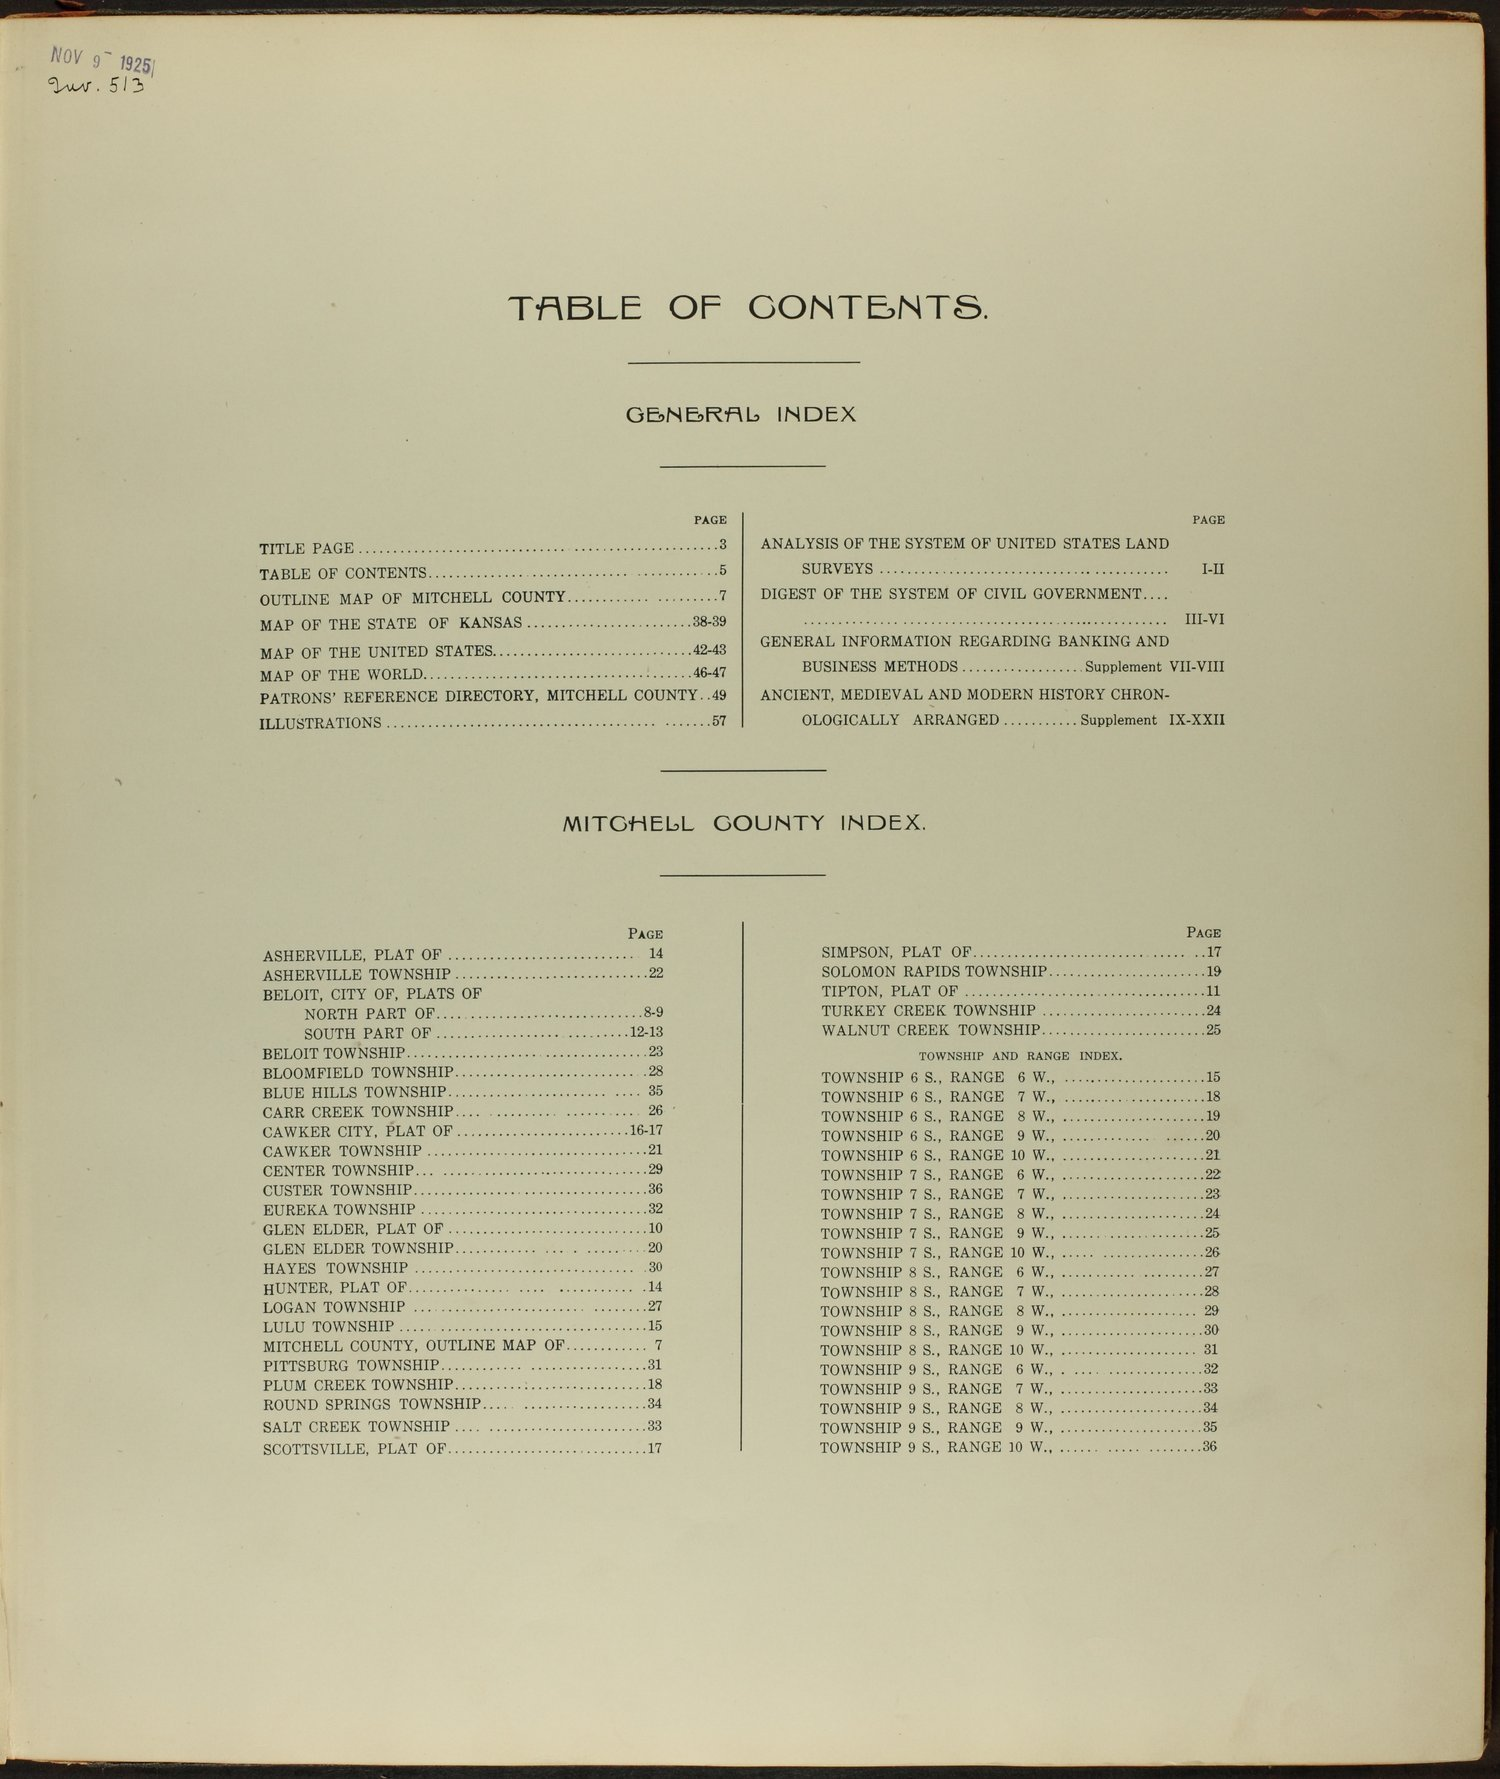 Standard atlas of Mitchell County, Kansas - Table of Contents